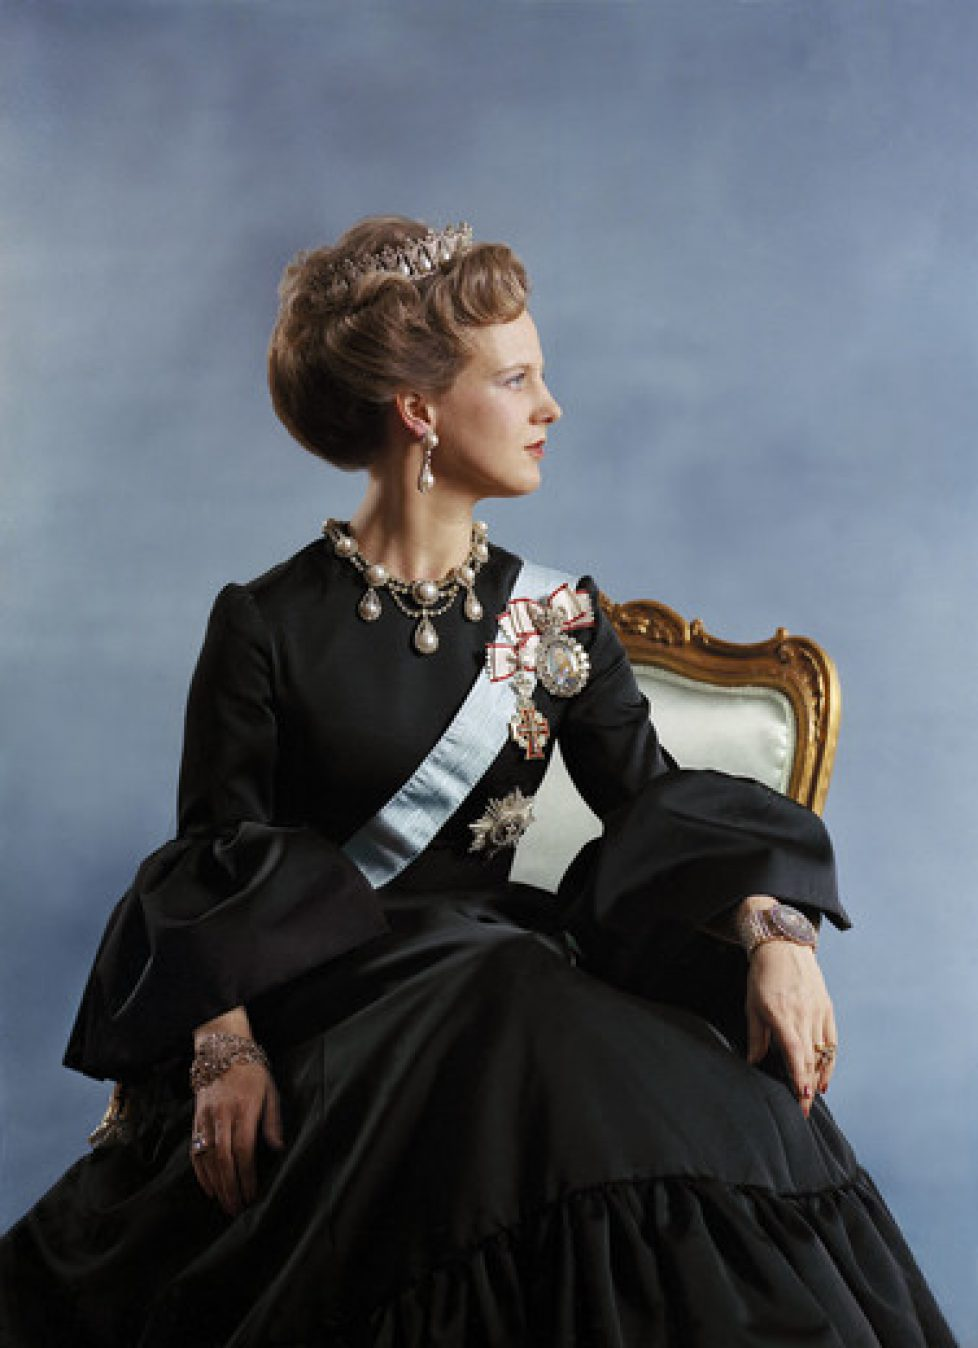 Archives : le premier portrait officiel de la reine Margrethe